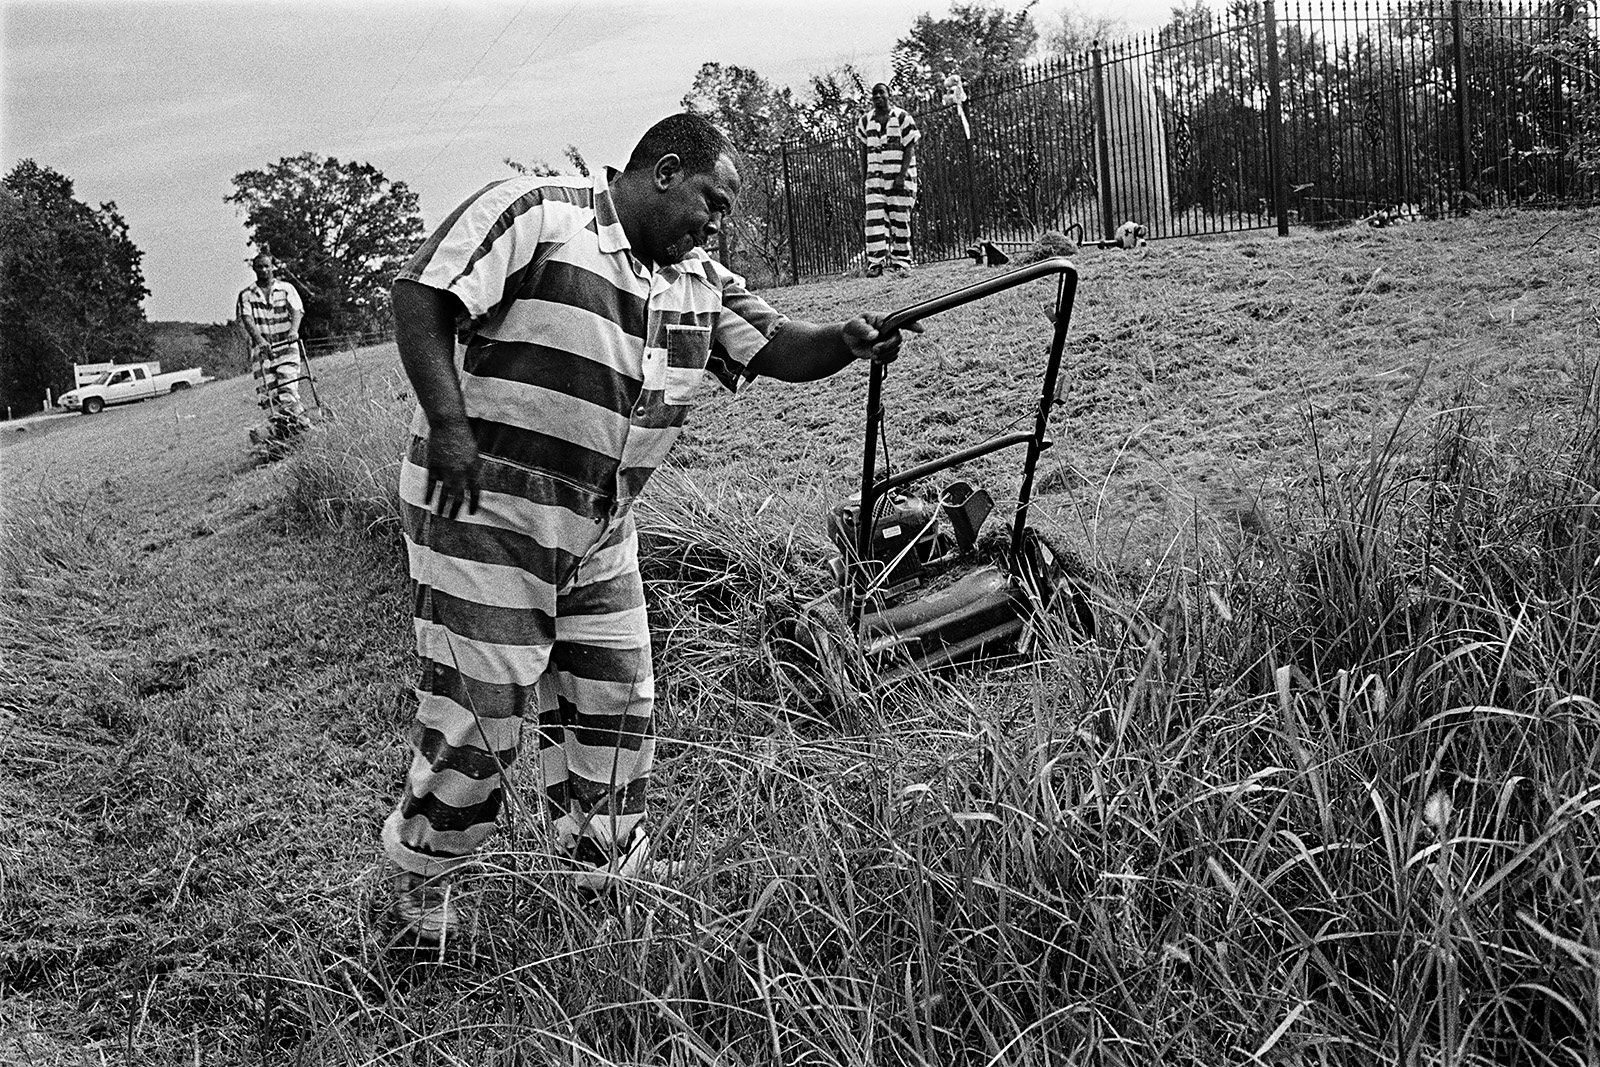 Convicts Mowing around the Viola Liuzzo Memorial Marker, between Selma and Montgomery, Alabama, 2009